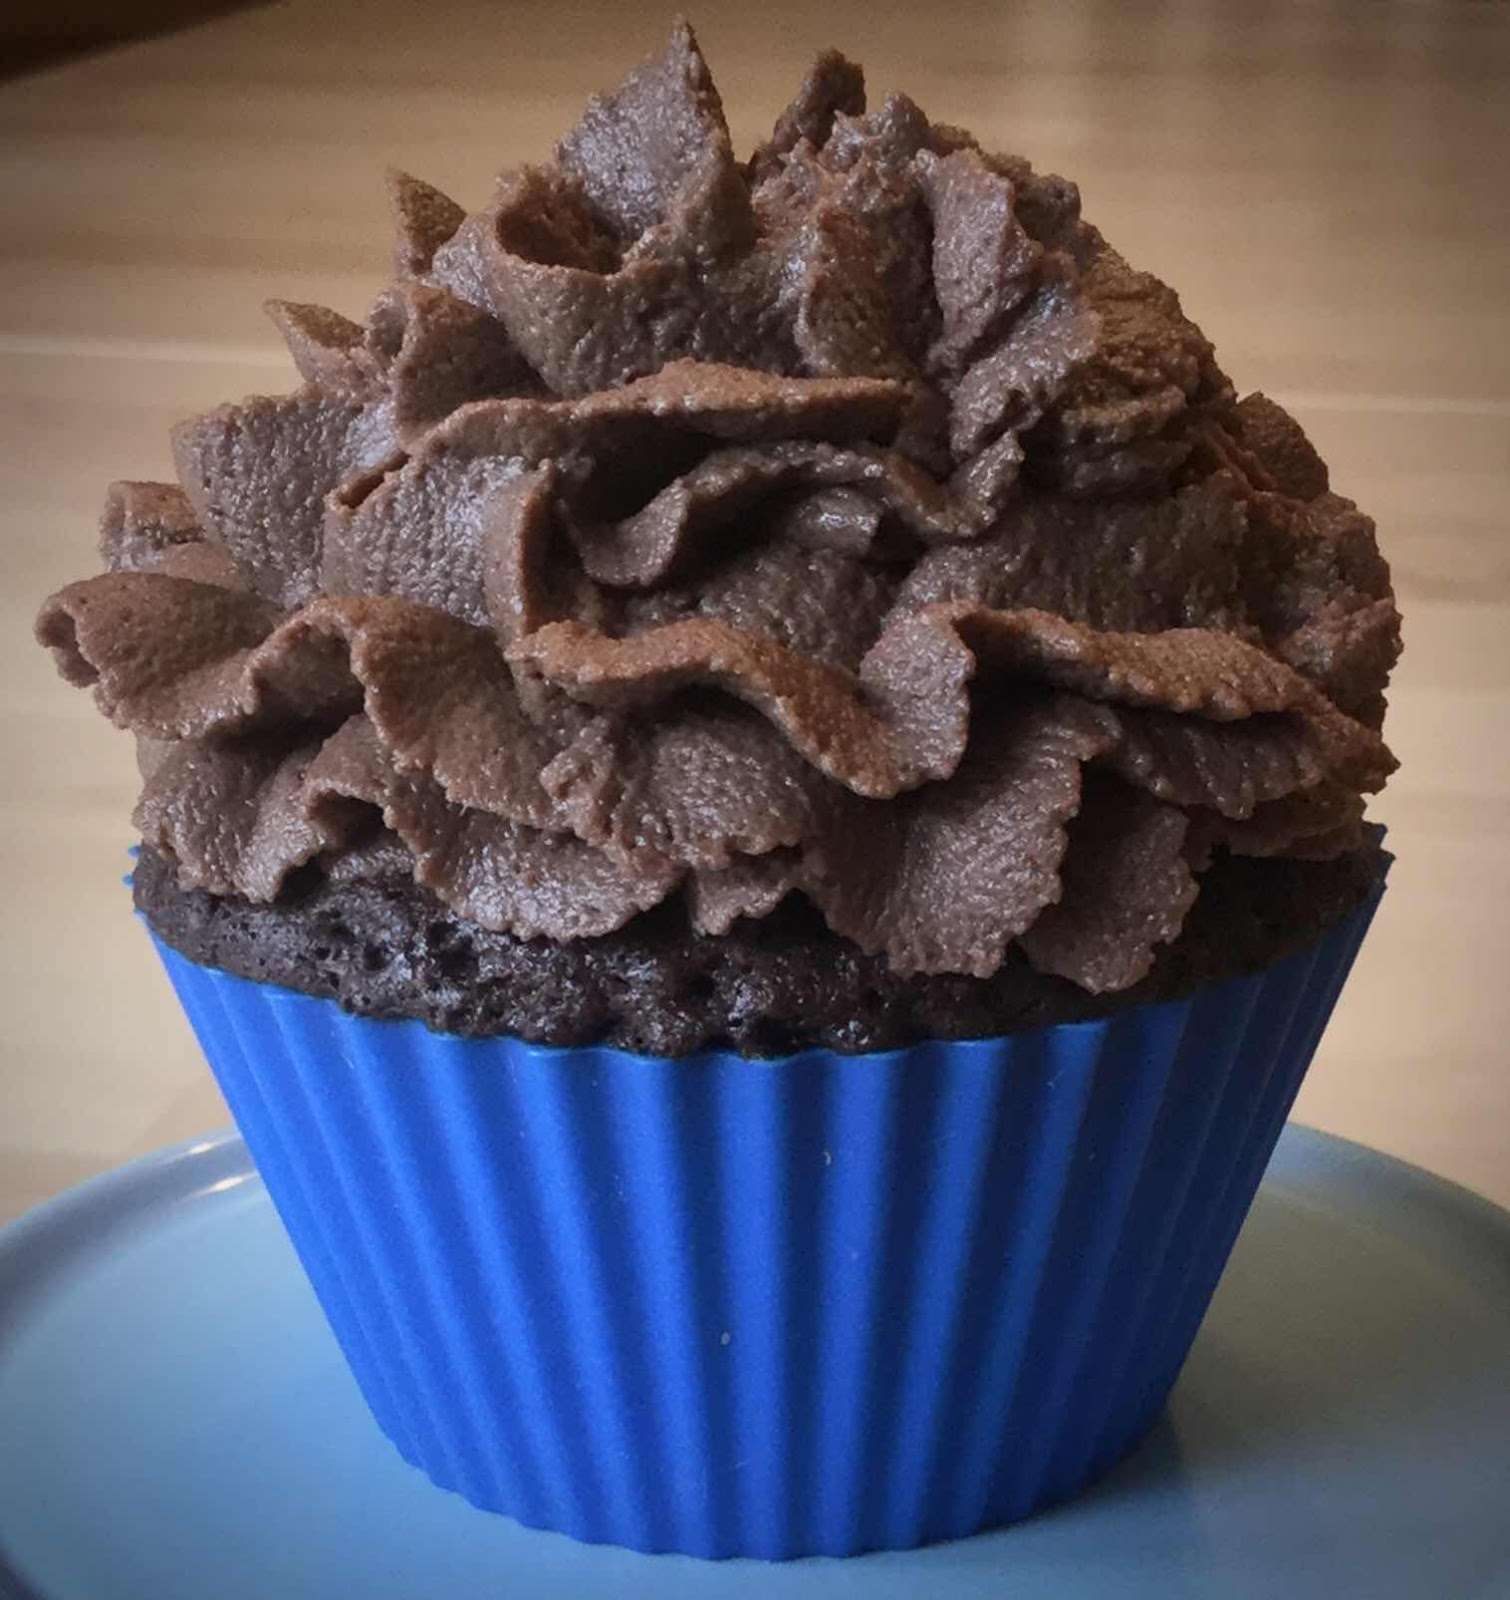 Low Carb Chocolate Fudge Frosting